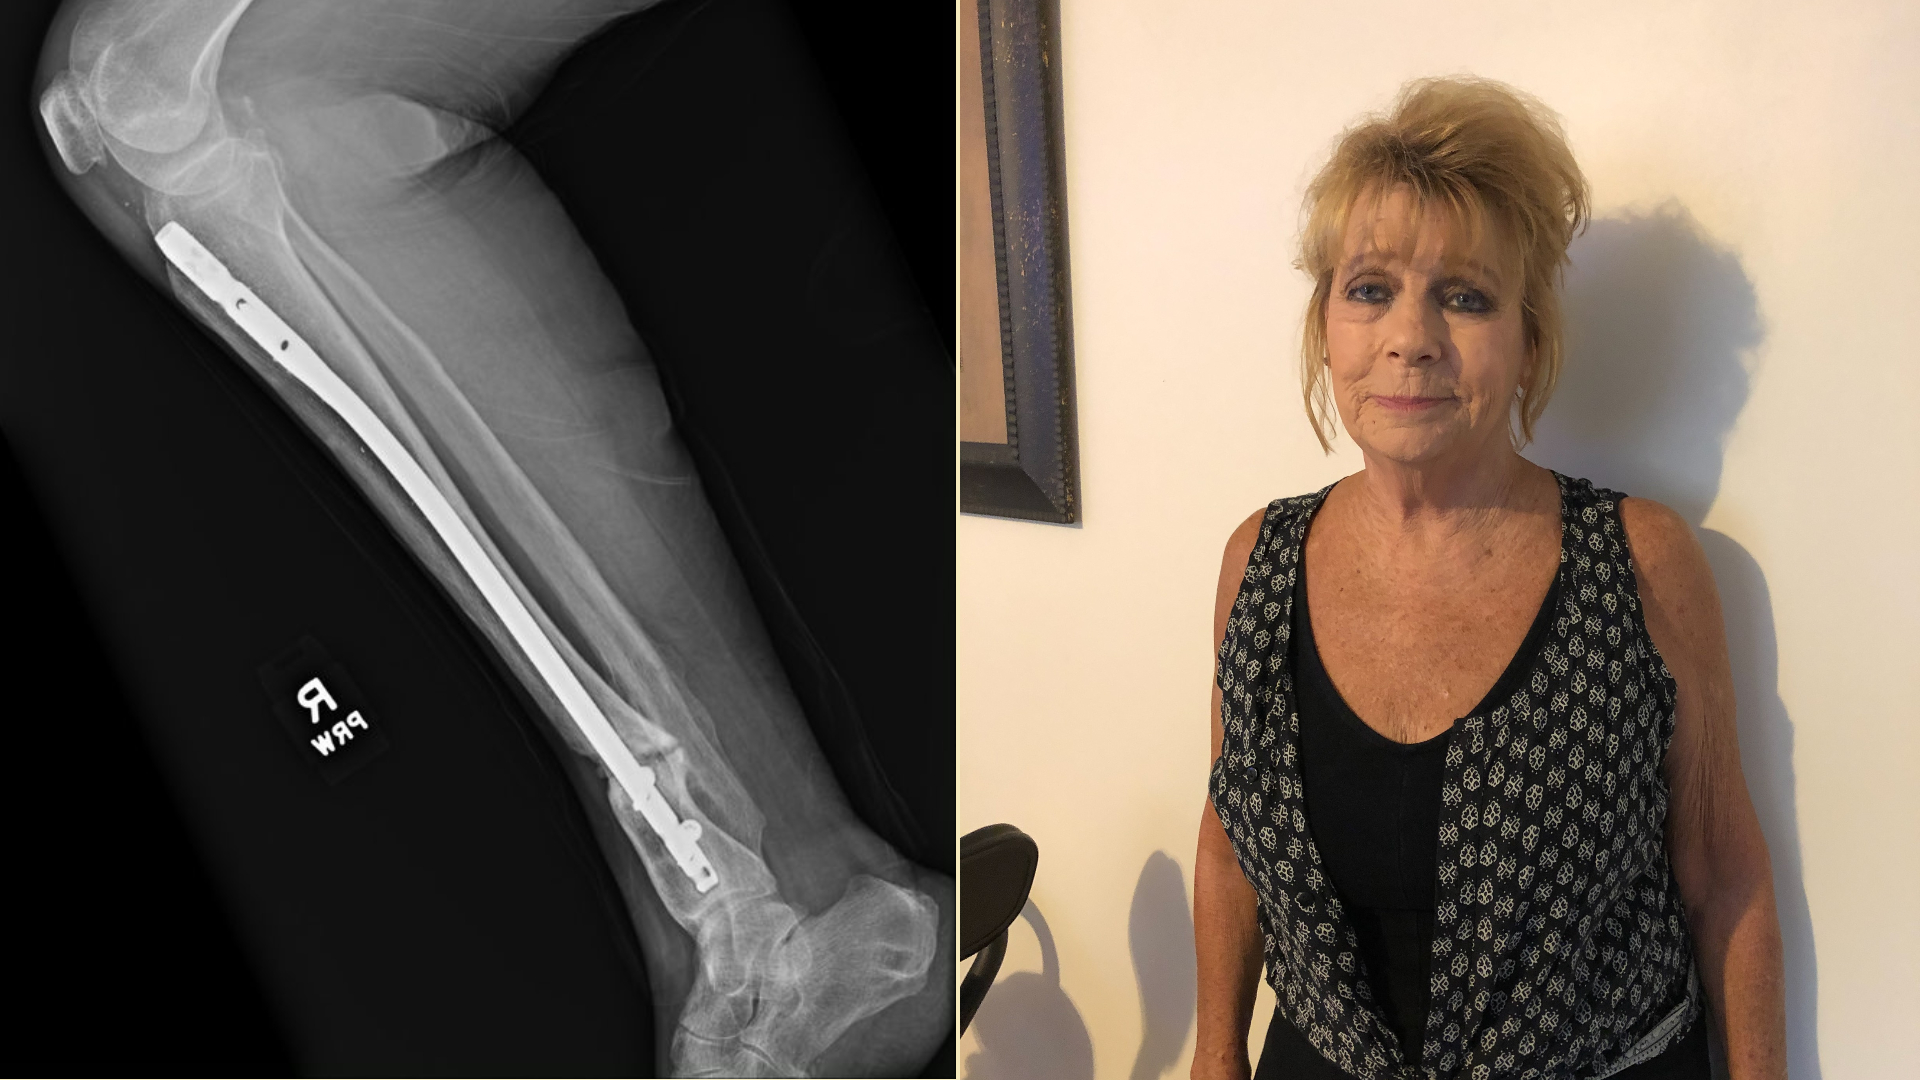 After a stress fracture in 2017, Cathy Hixson started on a long, frustrating orthopaedic journey.